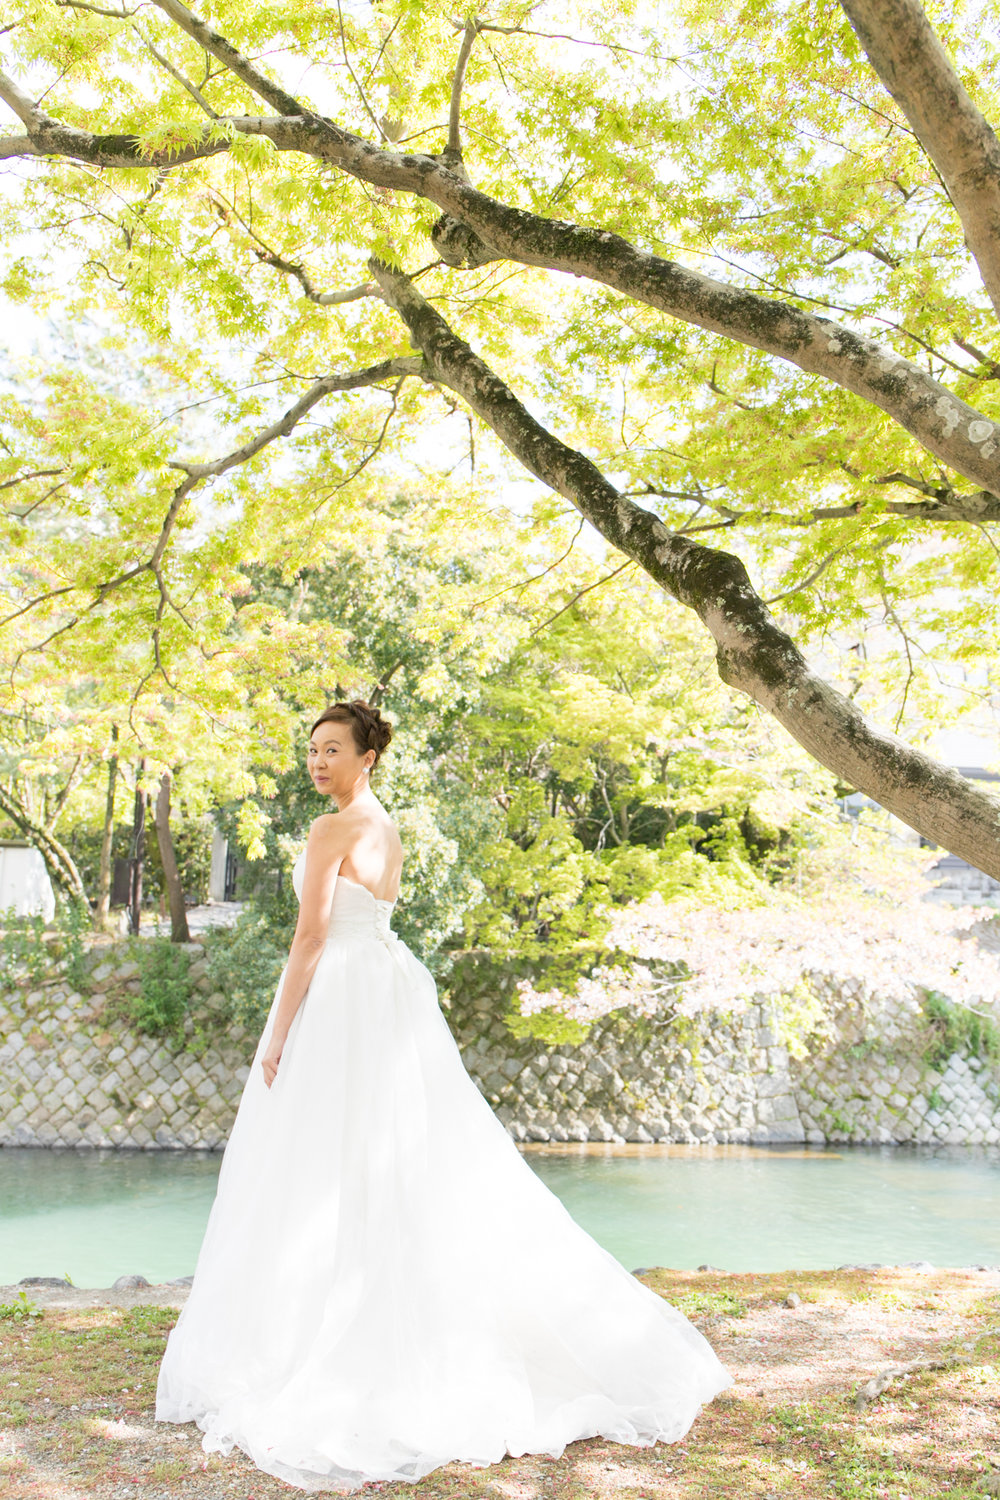 Wedding Photoshoot tour with photographer in Kyoto, Osaka and Tokyo, Japan